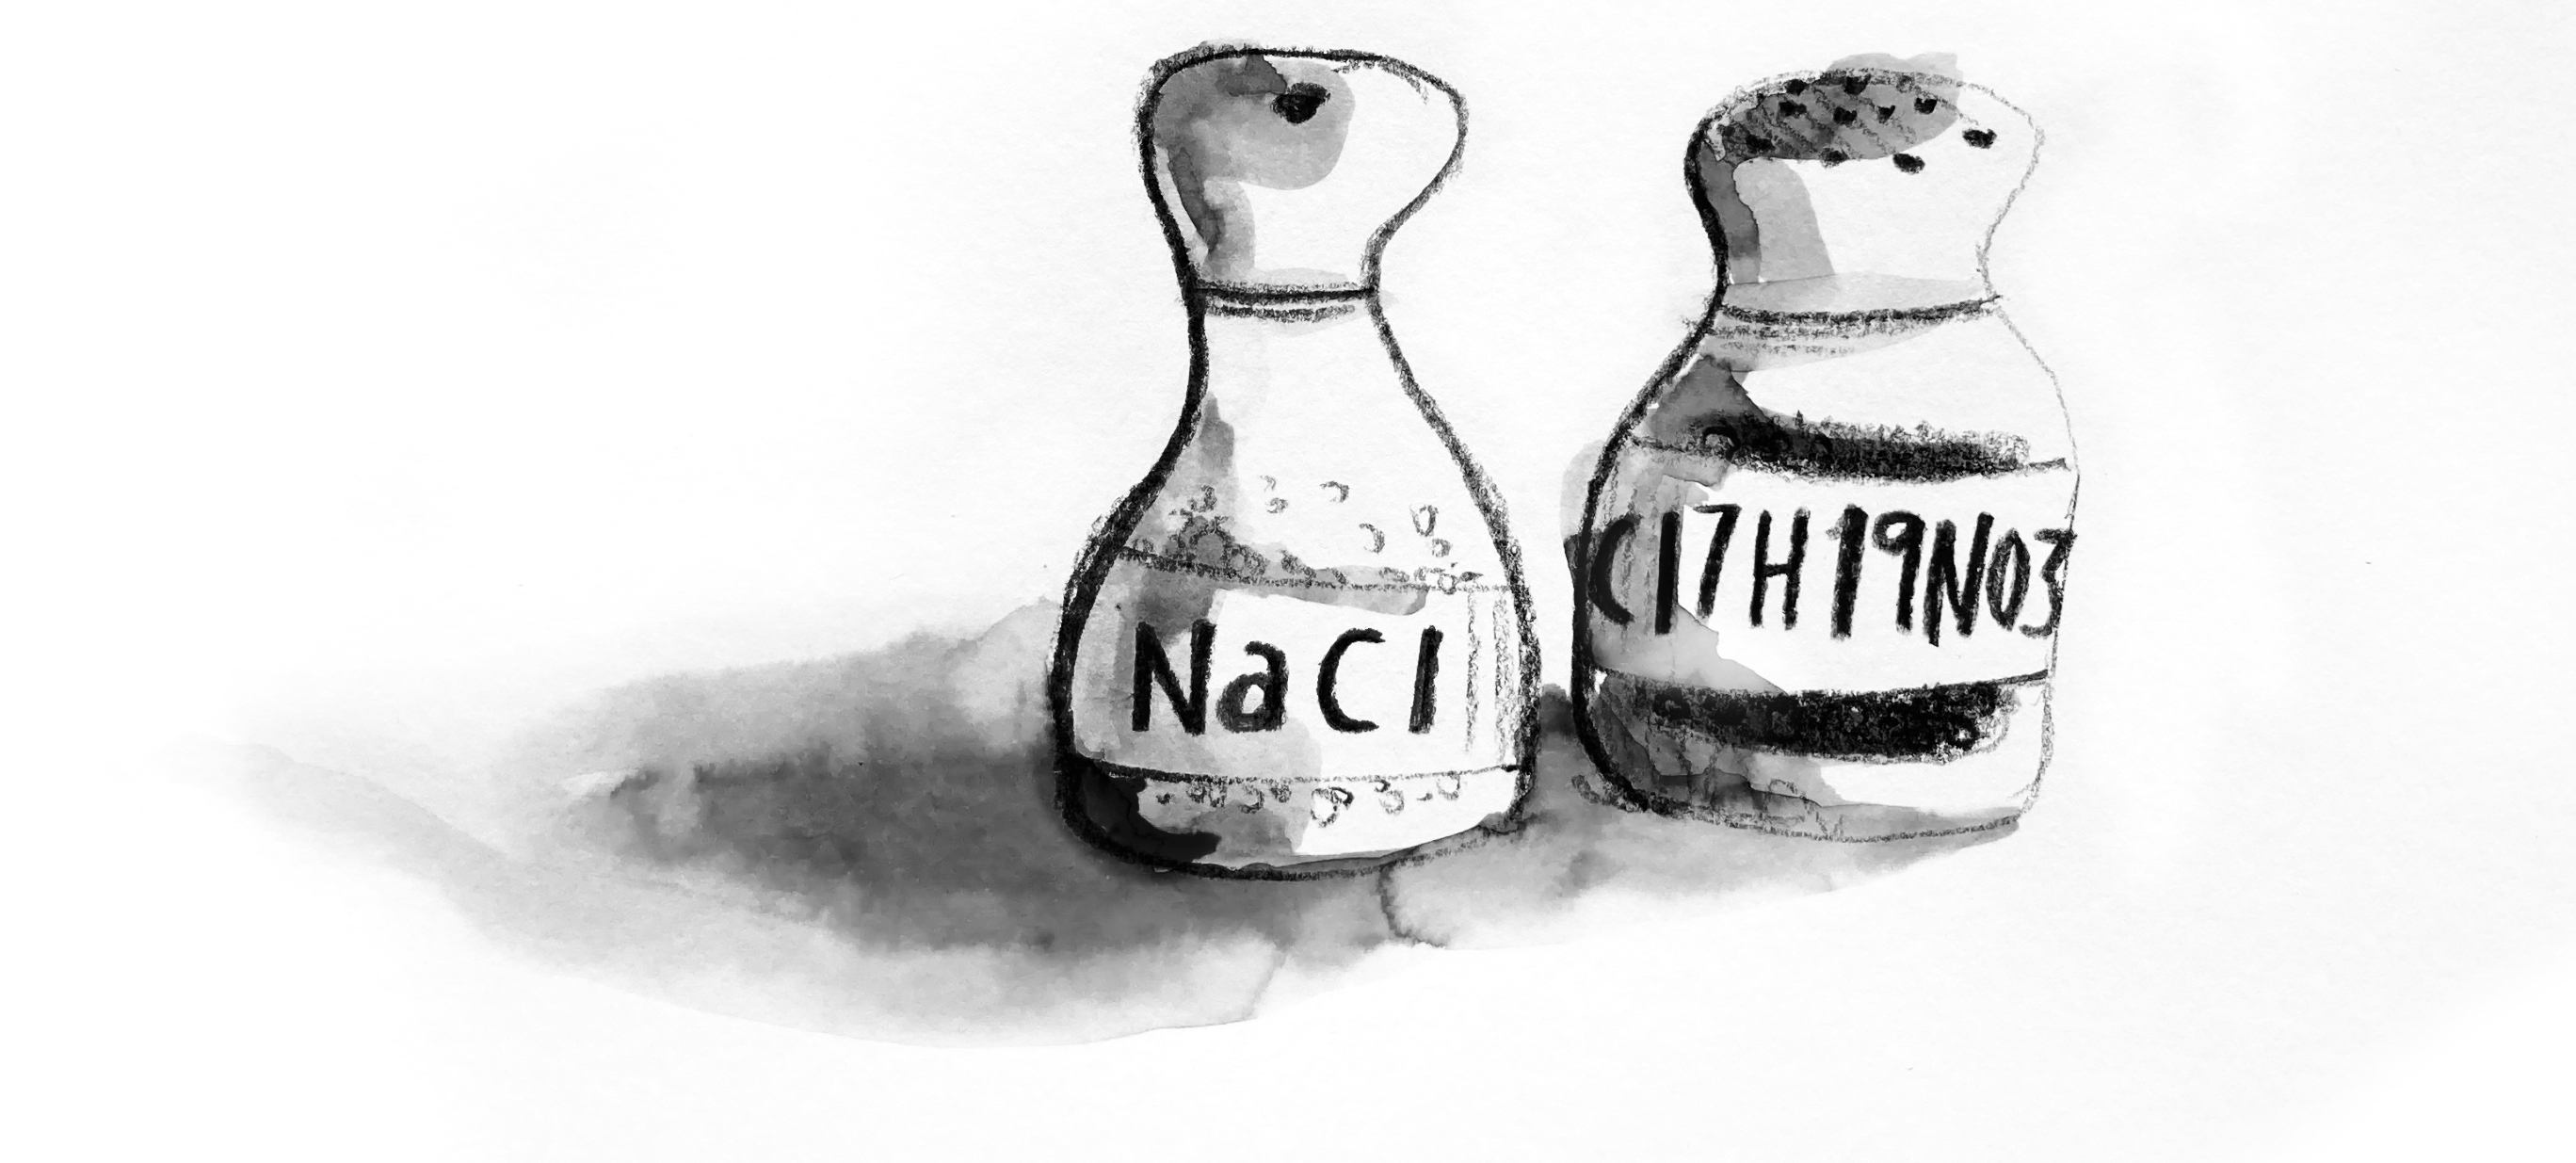 Illustration of a salt and pepper shaker with the chemical names on the shakers.